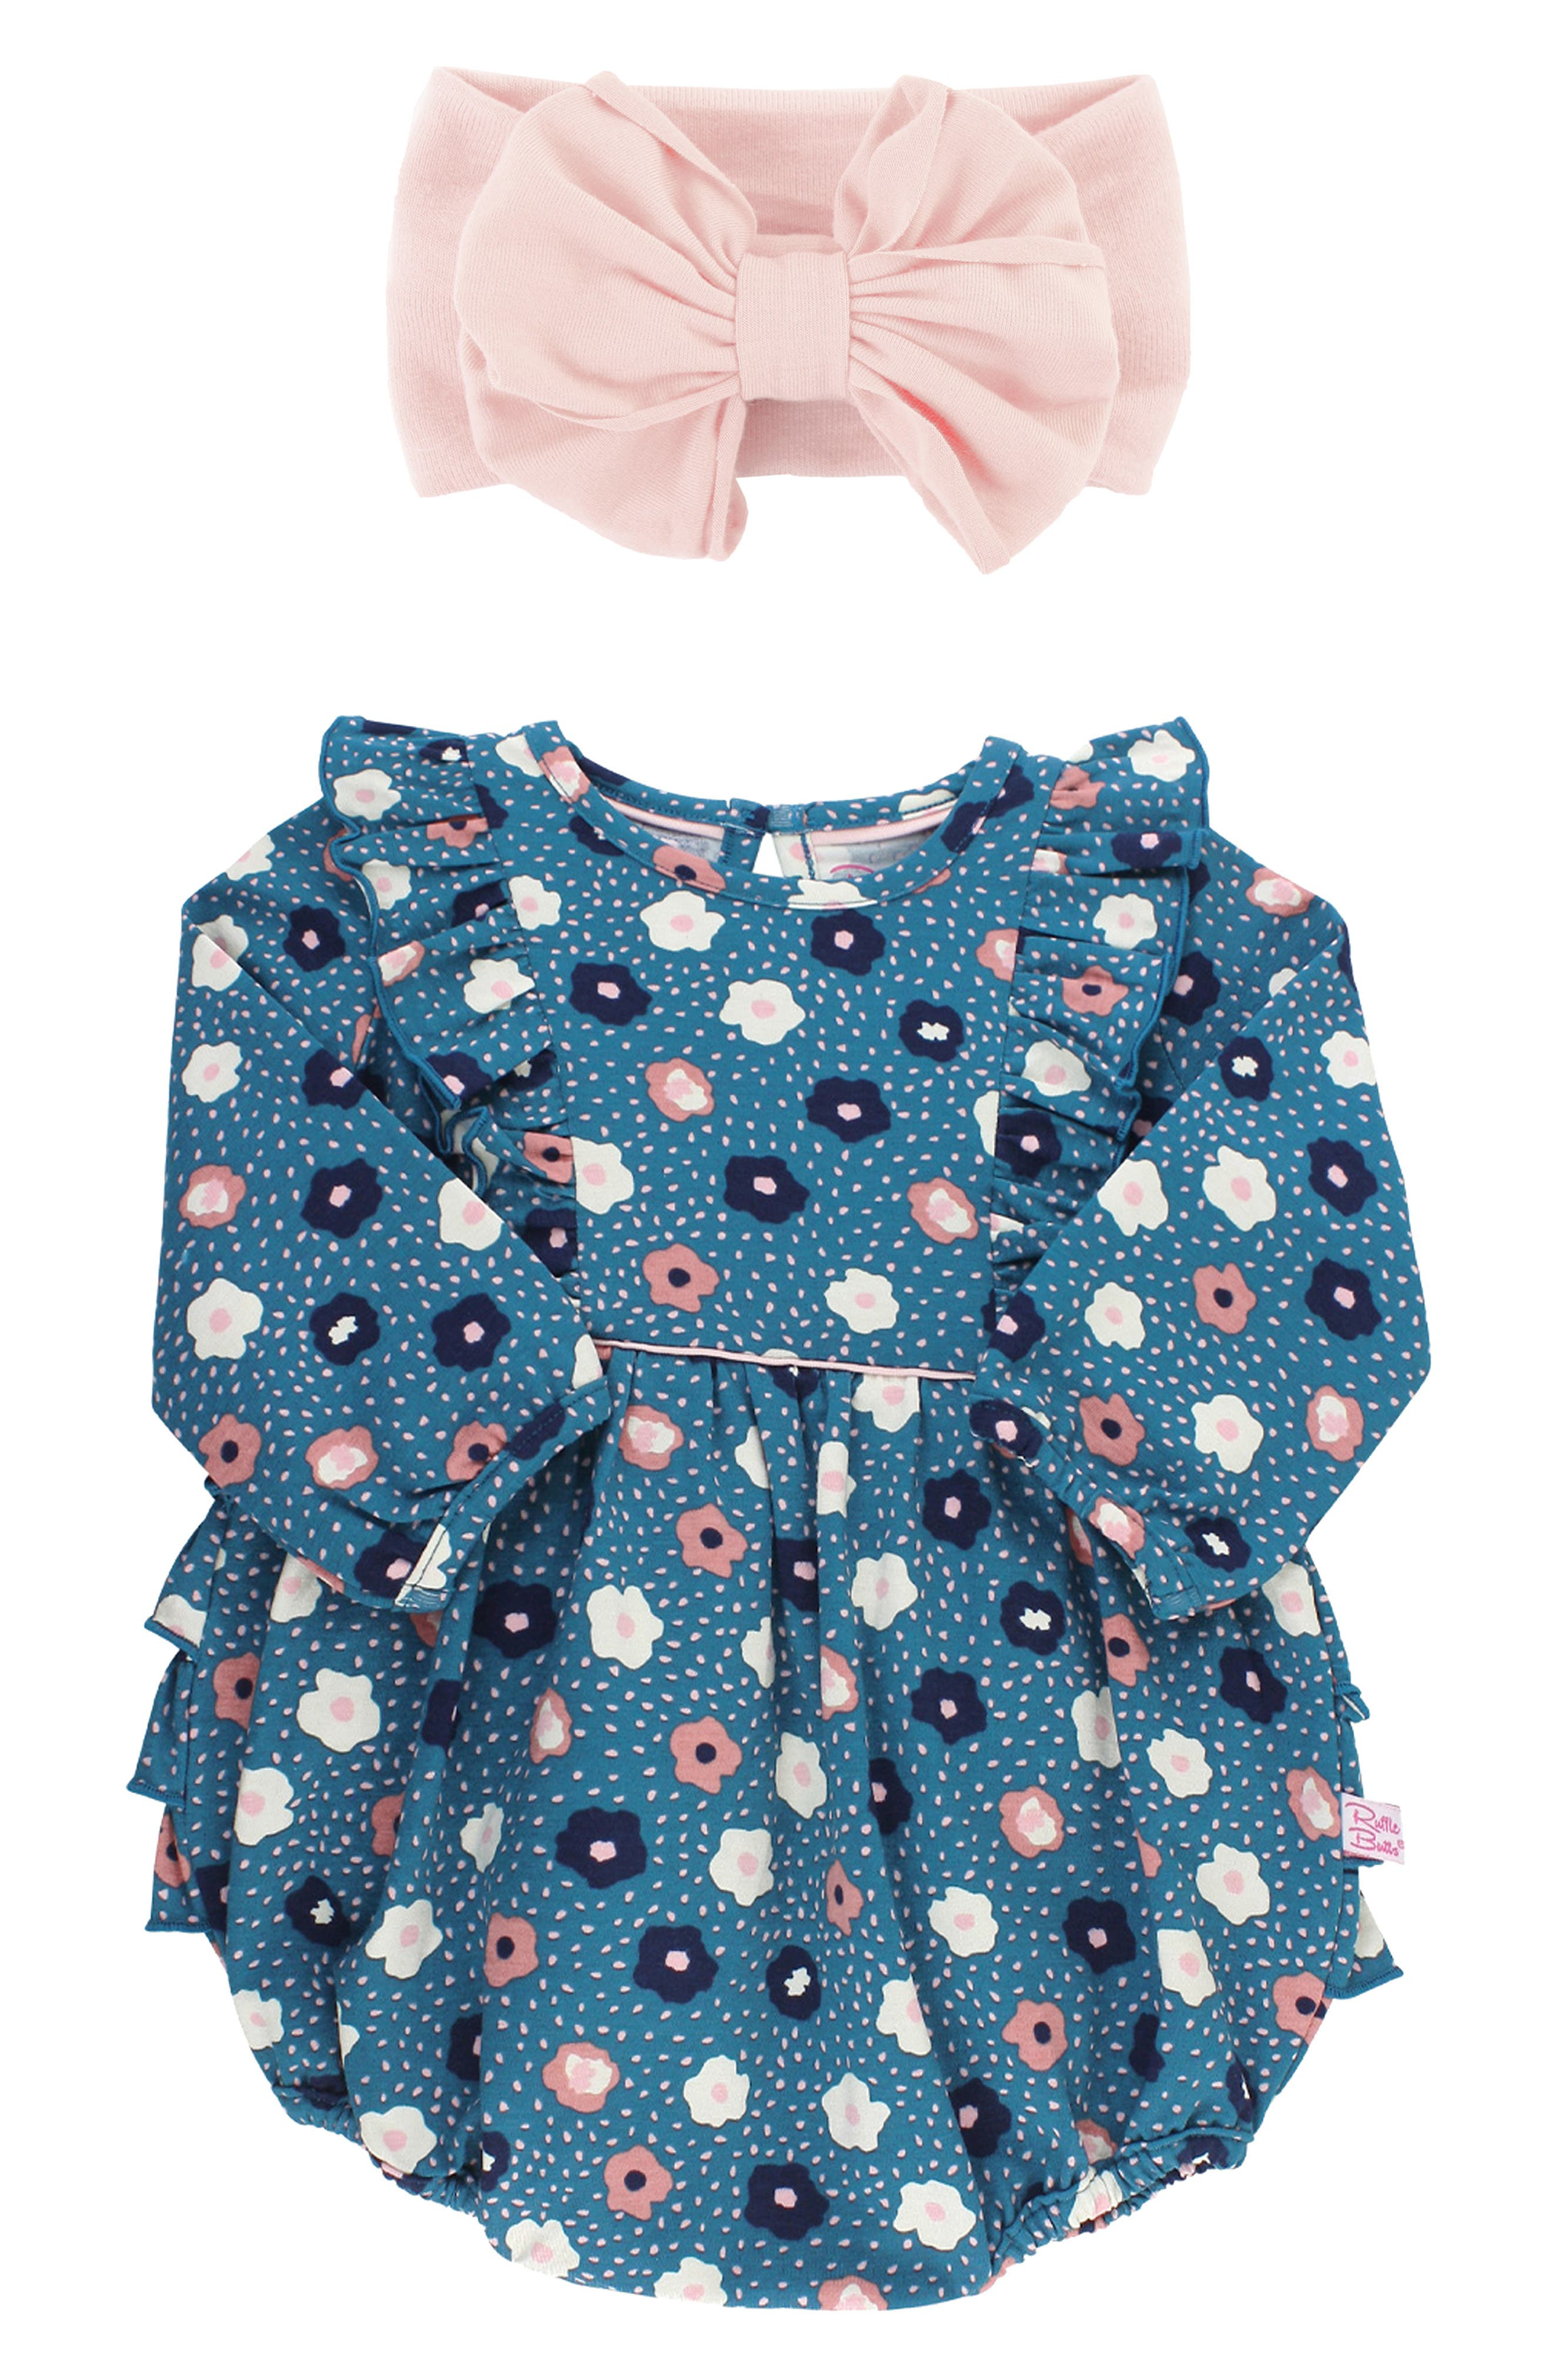 Pretty poppies and fluttery ruffles enliven a soft cotton romper that pairs charmingly with a soft, stretchy head wrap trimmed with a perfectly puckered bow. Style Name: Rufflebutts Poppy Seed Bubble Romper & Head Wrap Set (Baby). Style Number: 6095639. Available in stores.